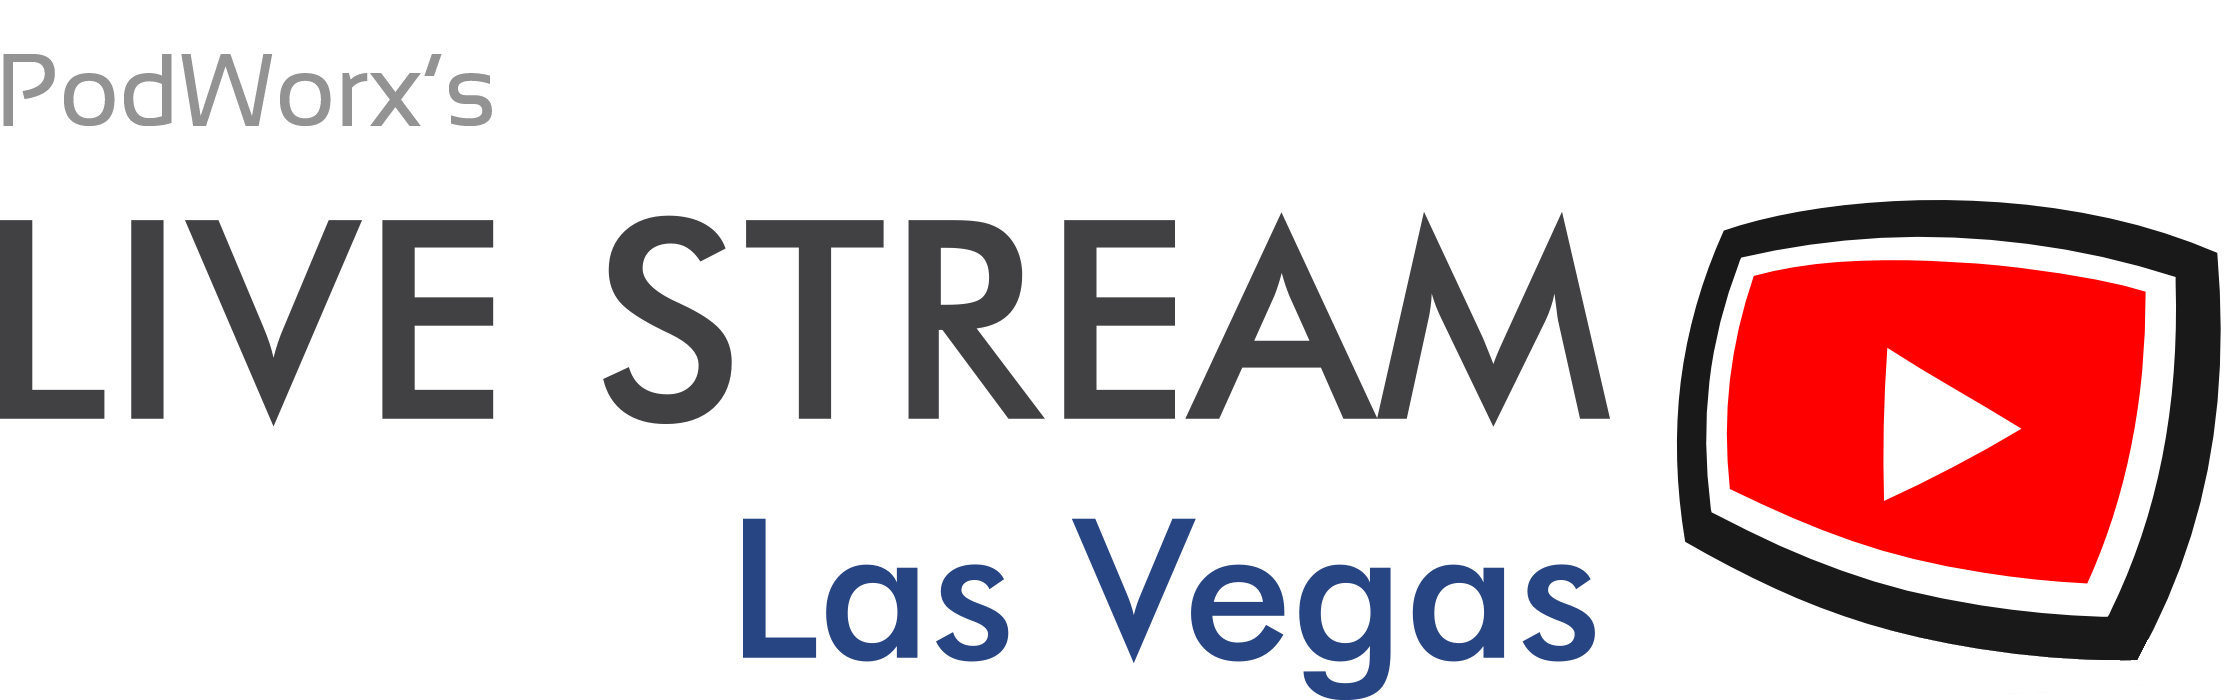 Live streaming video in las vegas live streaming video business learn about podworxs newest live stream service live stream las vegas stopboris Images